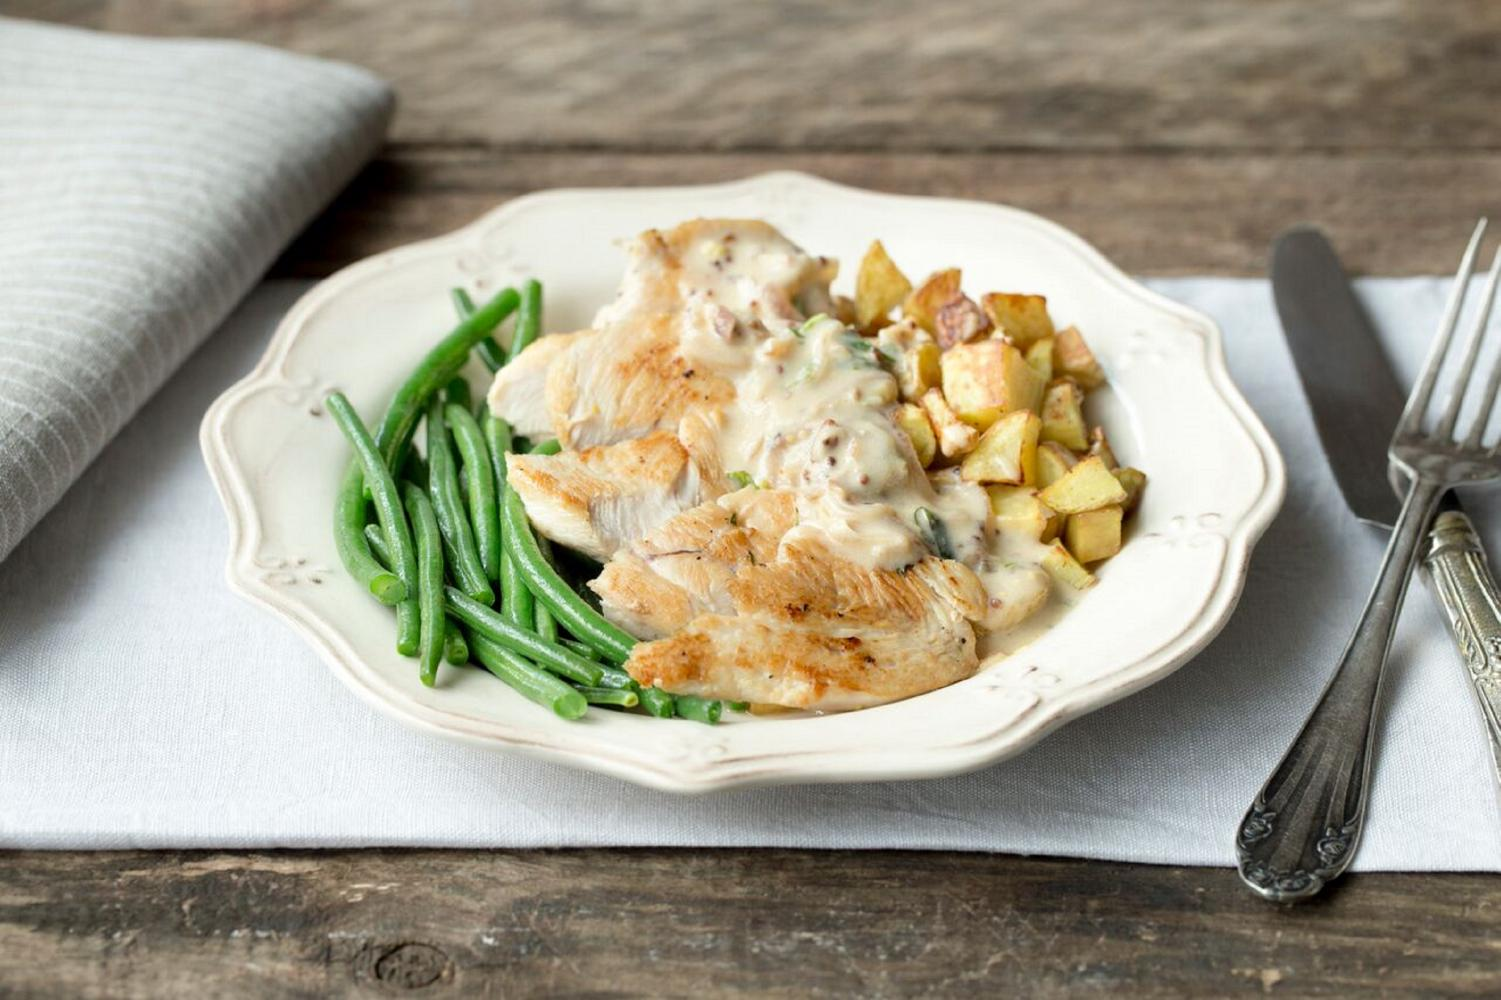 HelloFresh PAN-SEARED CHICKEN WITH ROASTED POTATOES, GREEN BEANS, AND CREAMY DILL SAUCE